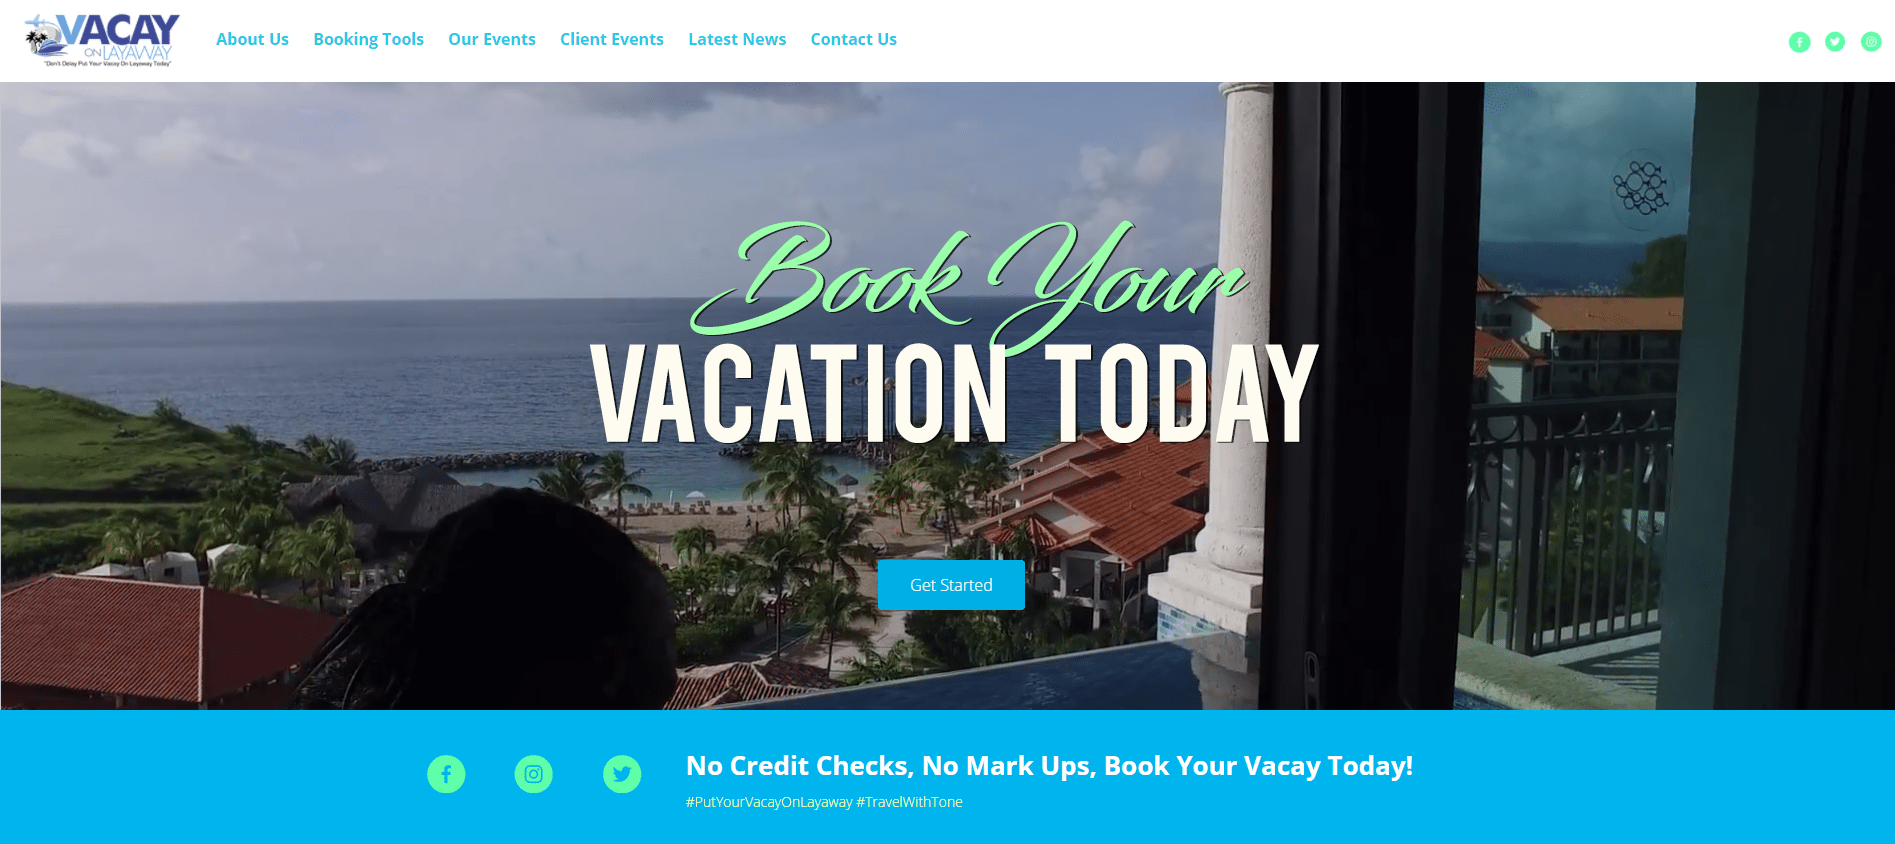 Vacay On Layaway Launches New Web Page!